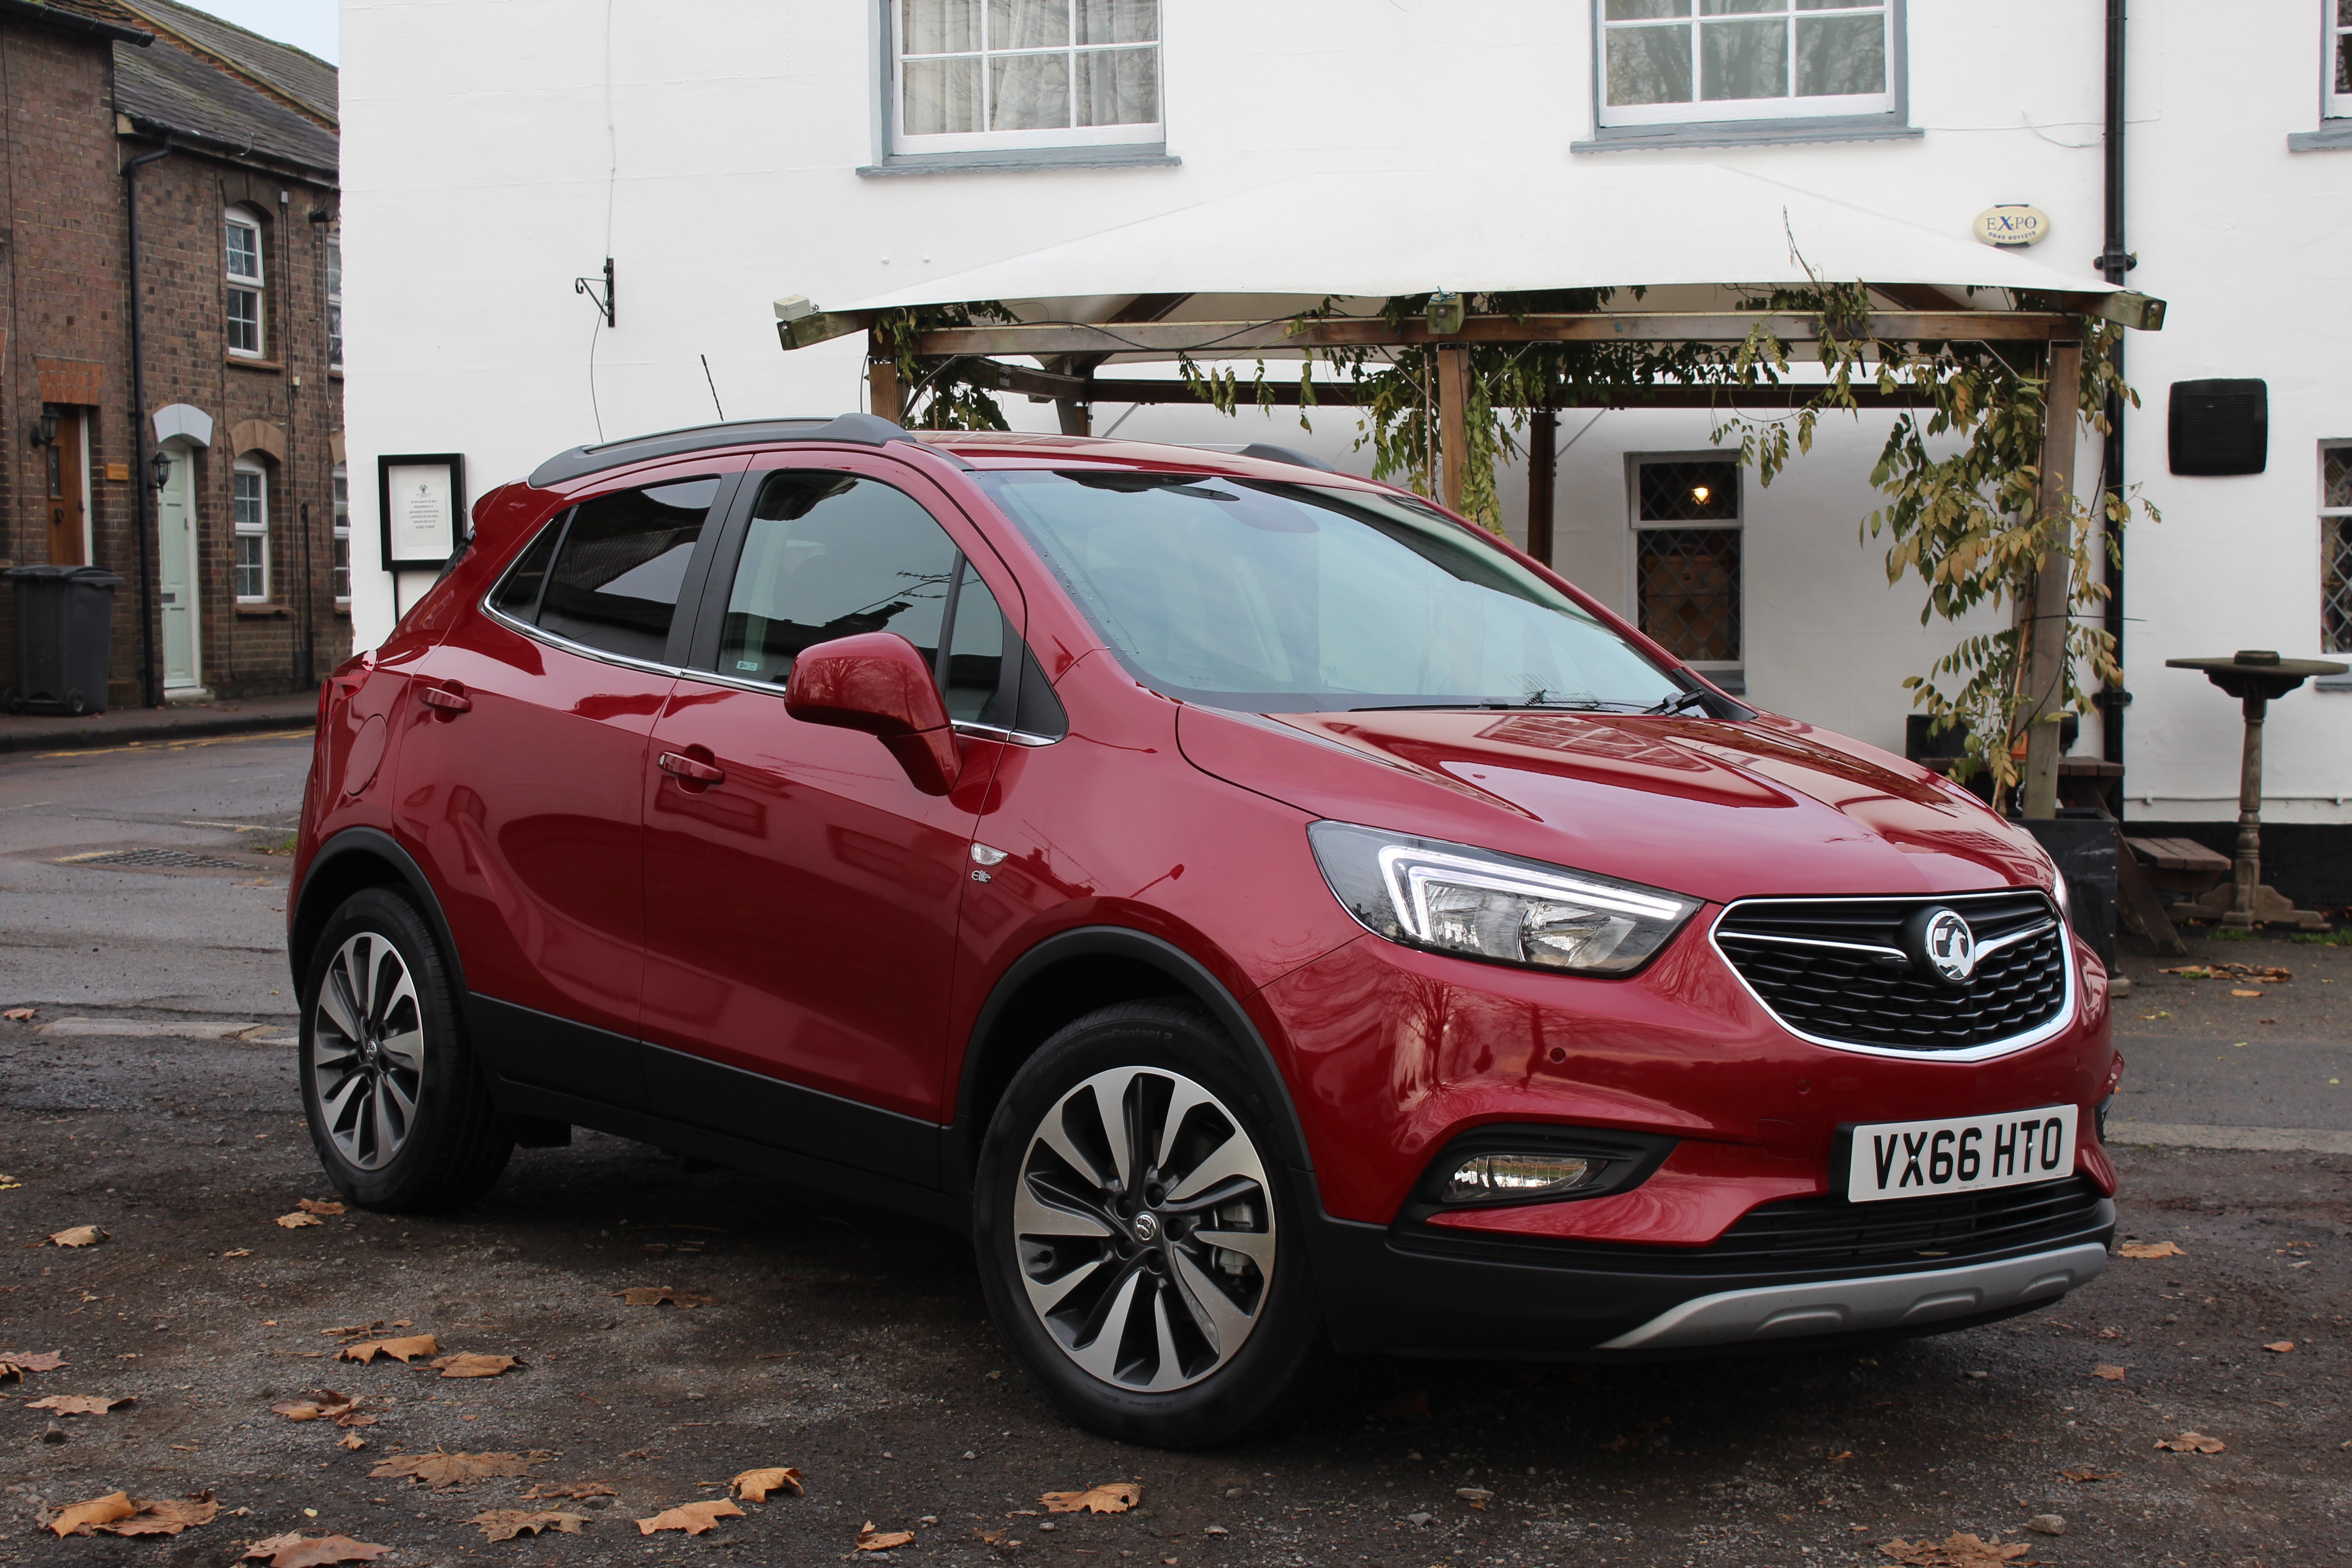 2017 vauxhall mokka x 1 6cdti 136ps elite review car reviews driver 39 s seat. Black Bedroom Furniture Sets. Home Design Ideas